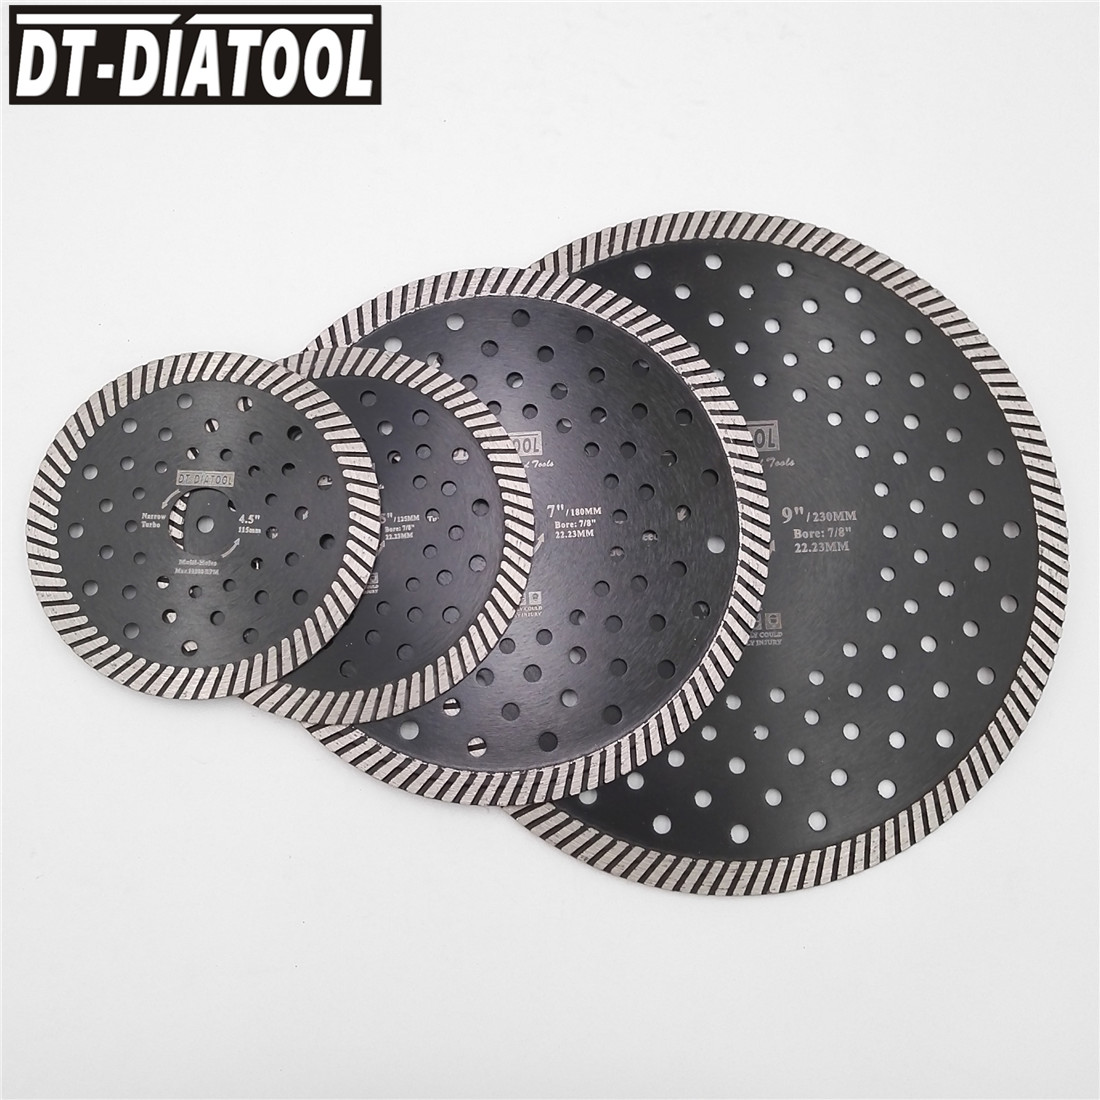 DT-DIATOOL Diamond Hot Pressed Narrow Turbo Saw Blade Multi Holes diamond disc Cutting Granite Marble Masonry 4 4.5 5 7 9 turbo fb 9 red multi